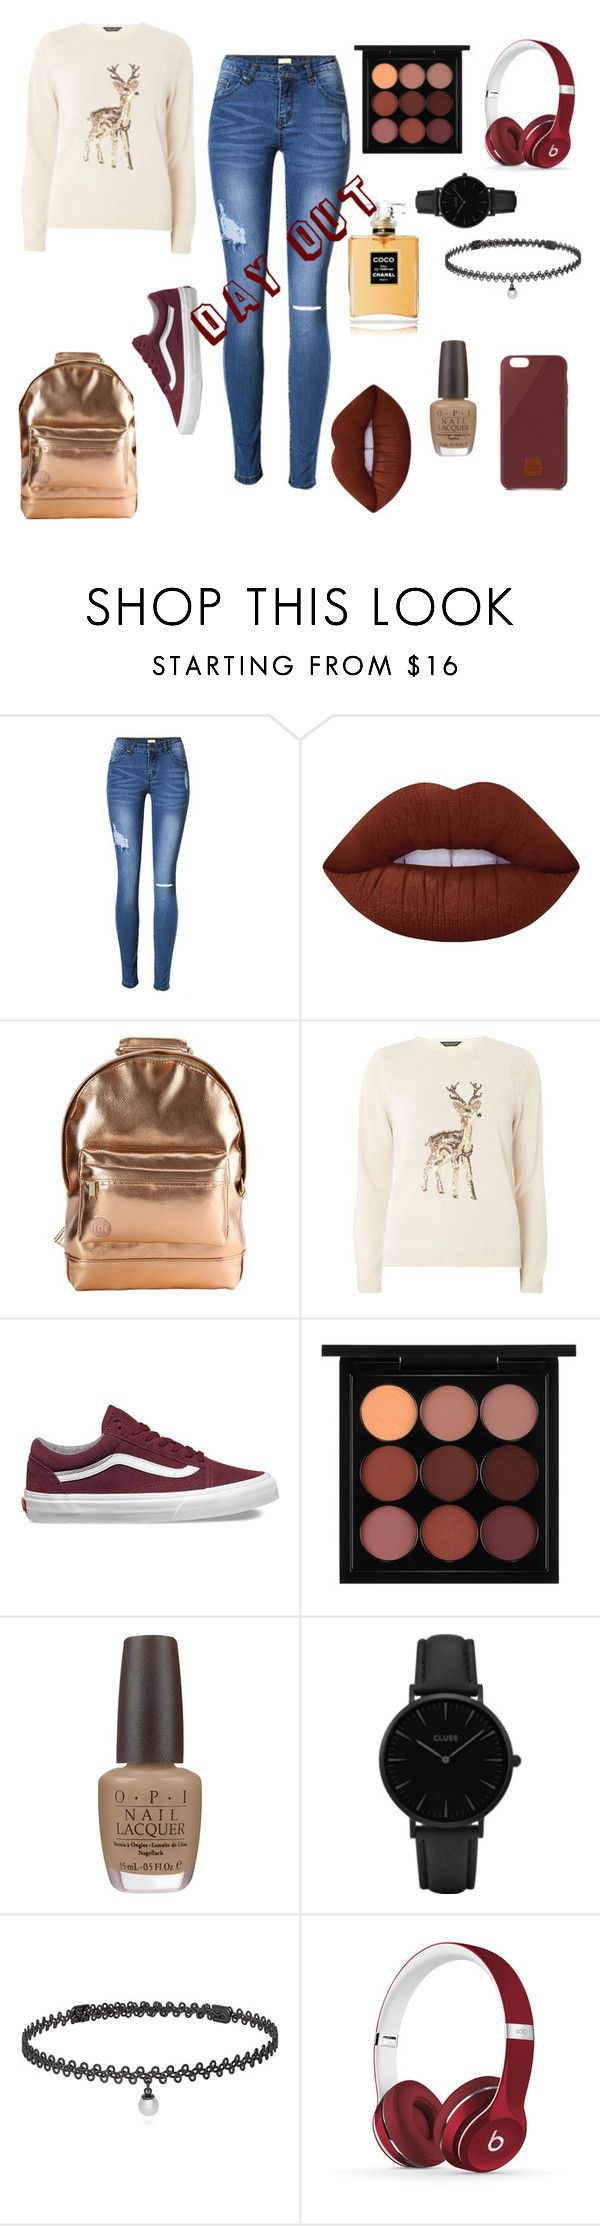 """""""Day Out"""" by adele-ioannou ❤ liked on Polyvore featuring Lime Crime, Mi-Pac, Dorothy Perkins, Vans, MAC Cosmetics, OPI, CLUSE, BERRICLE, Beats by Dr. Dre and Native Union"""